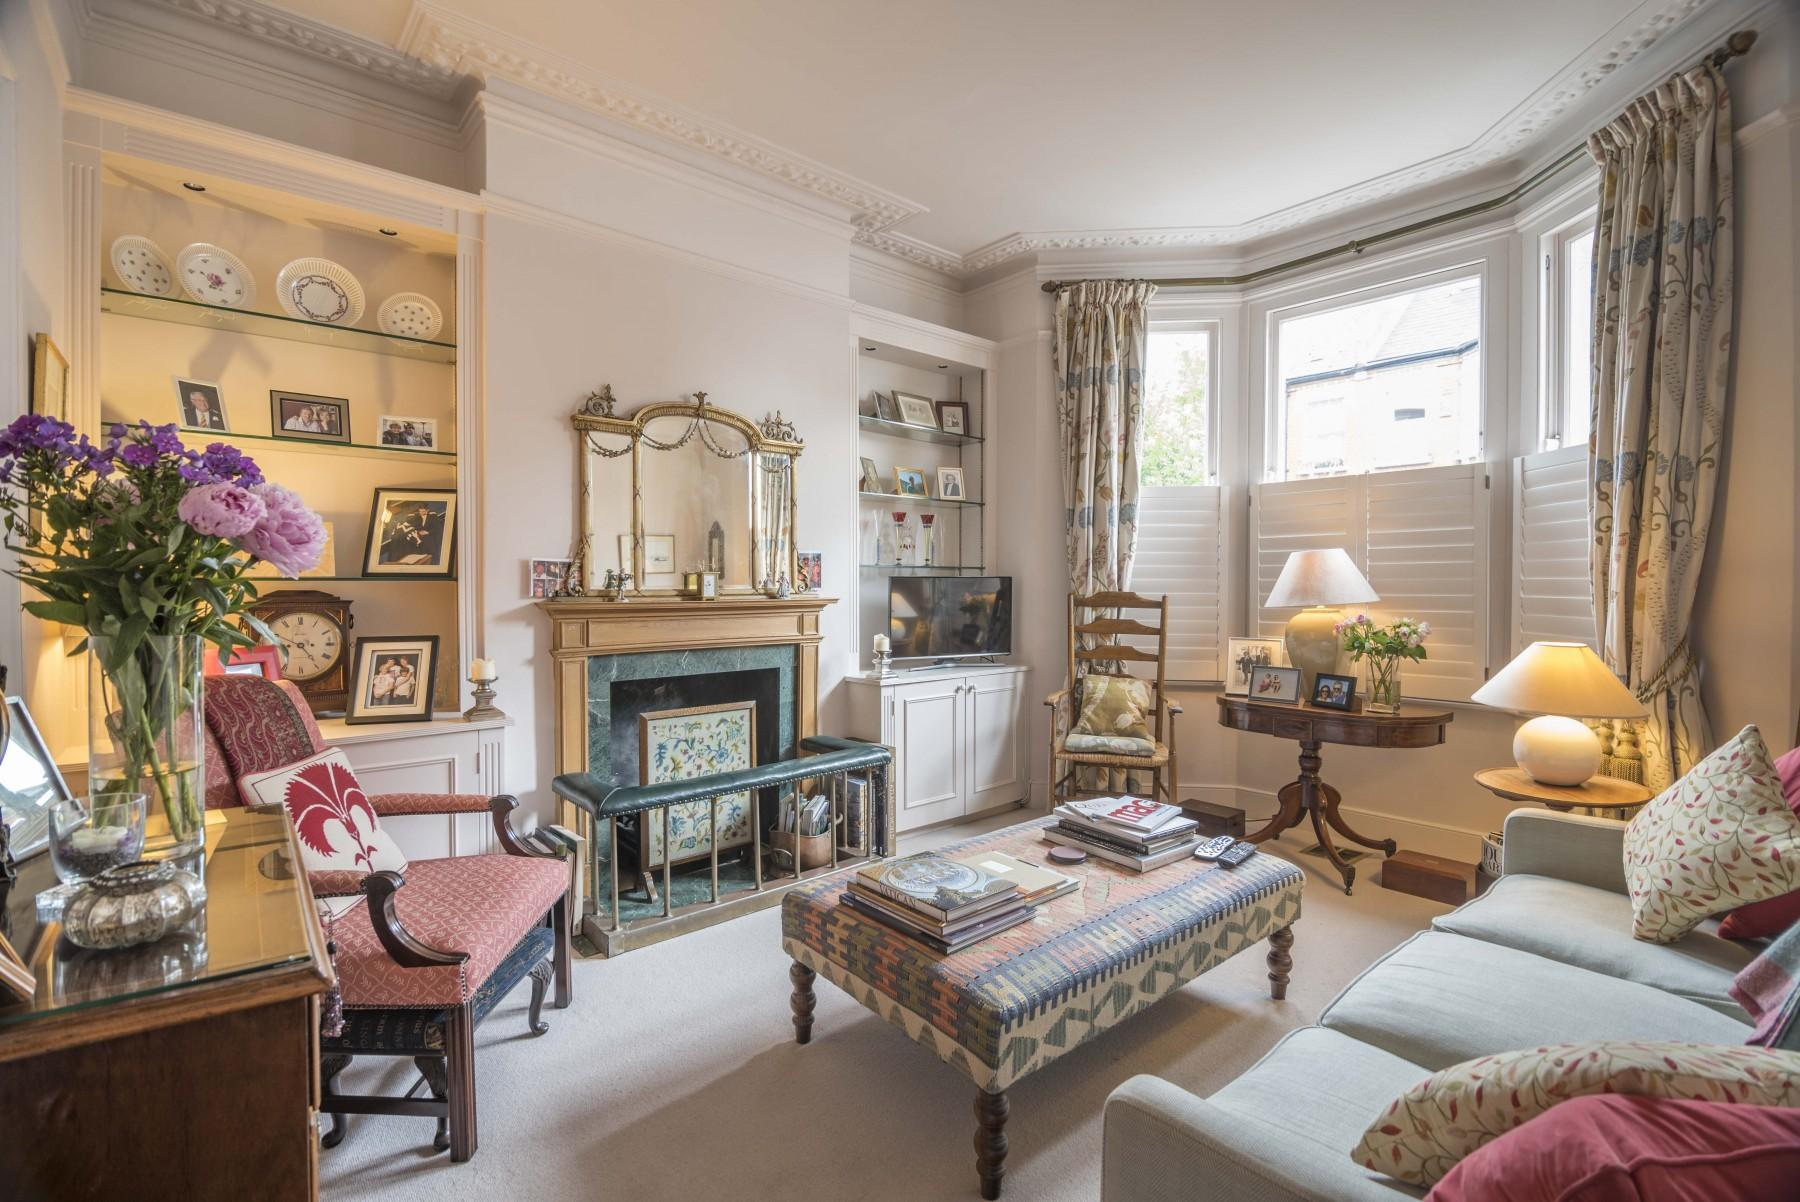 Property Image 1 - Enchanting Clapham Common Home with Garden